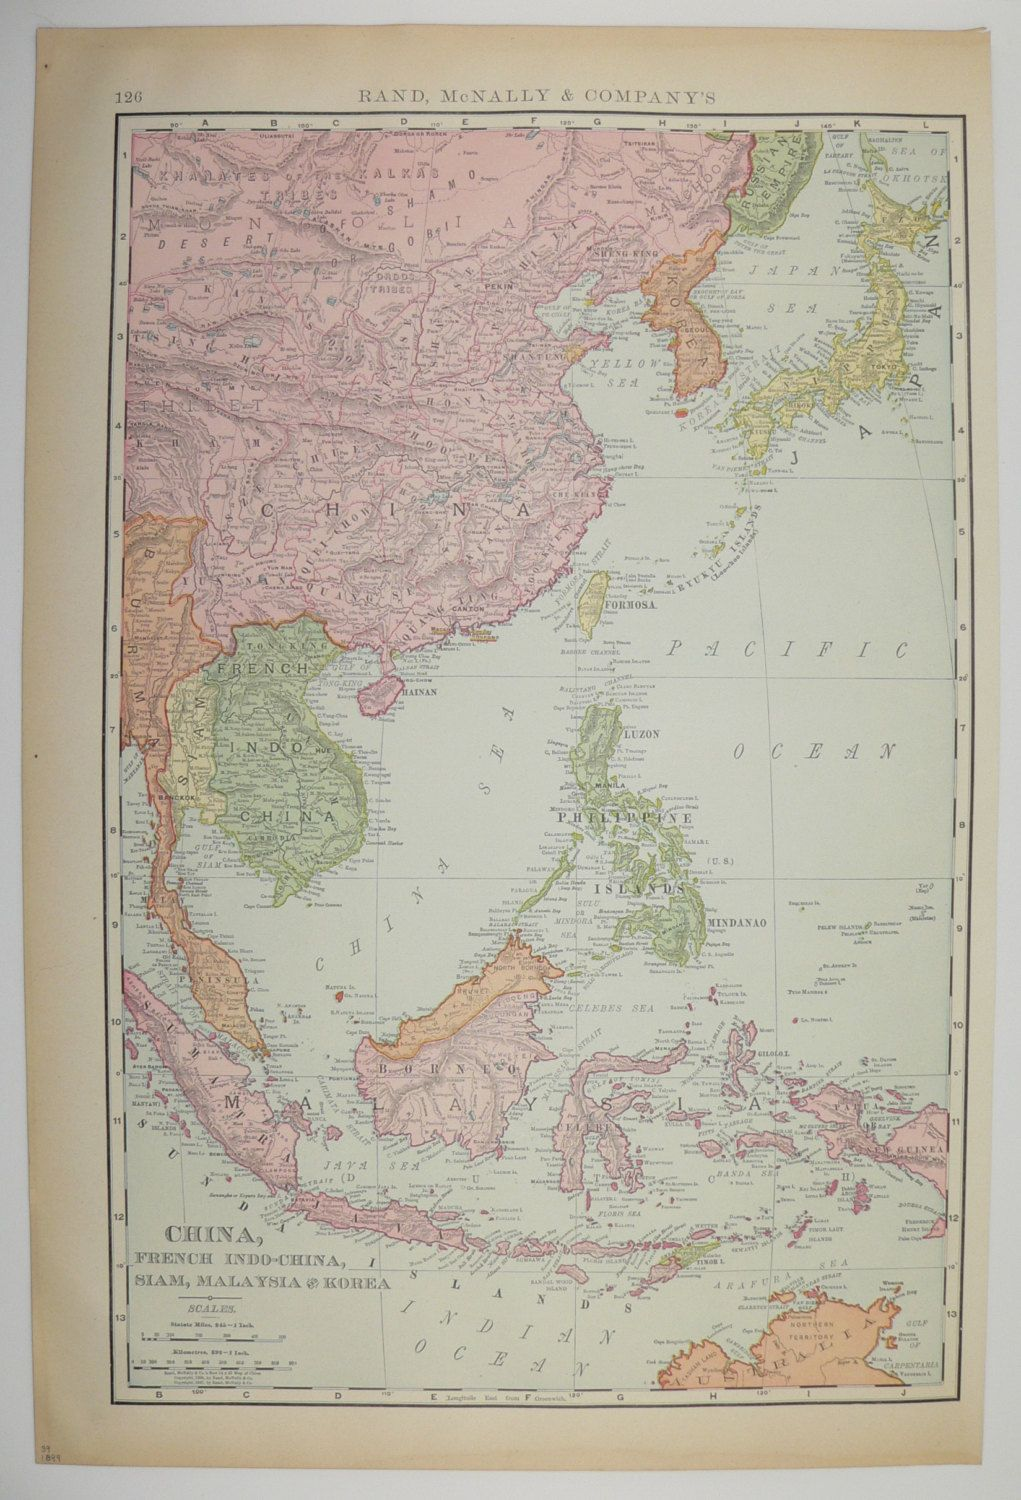 China map malaysia korea map vietnam 1899 japan taiwan map china map malaysia korea map vietnam 1899 japan taiwan map philippines old world travel map gift idea under 50 for home wall map art gift gumiabroncs Images